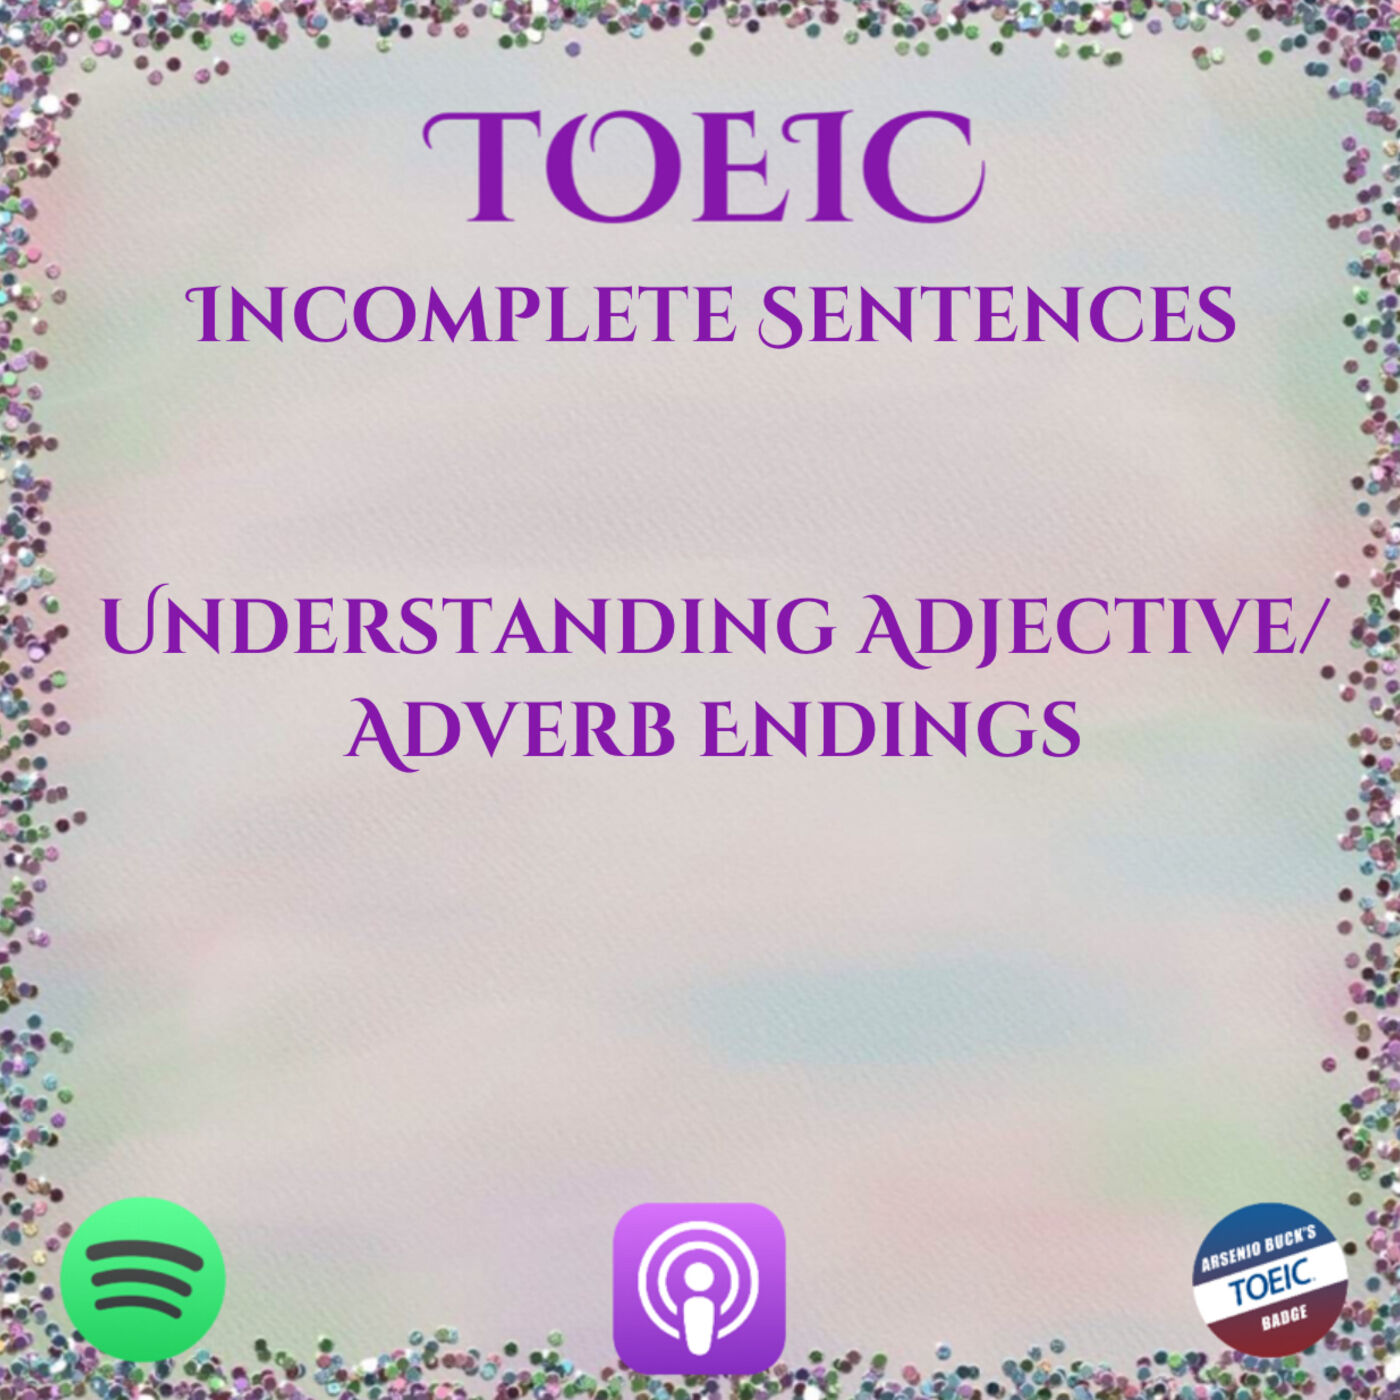 TOEIC | Incomplete Sentences | Part VI | Mini-test & Understanding Adjective/Adverb Endings